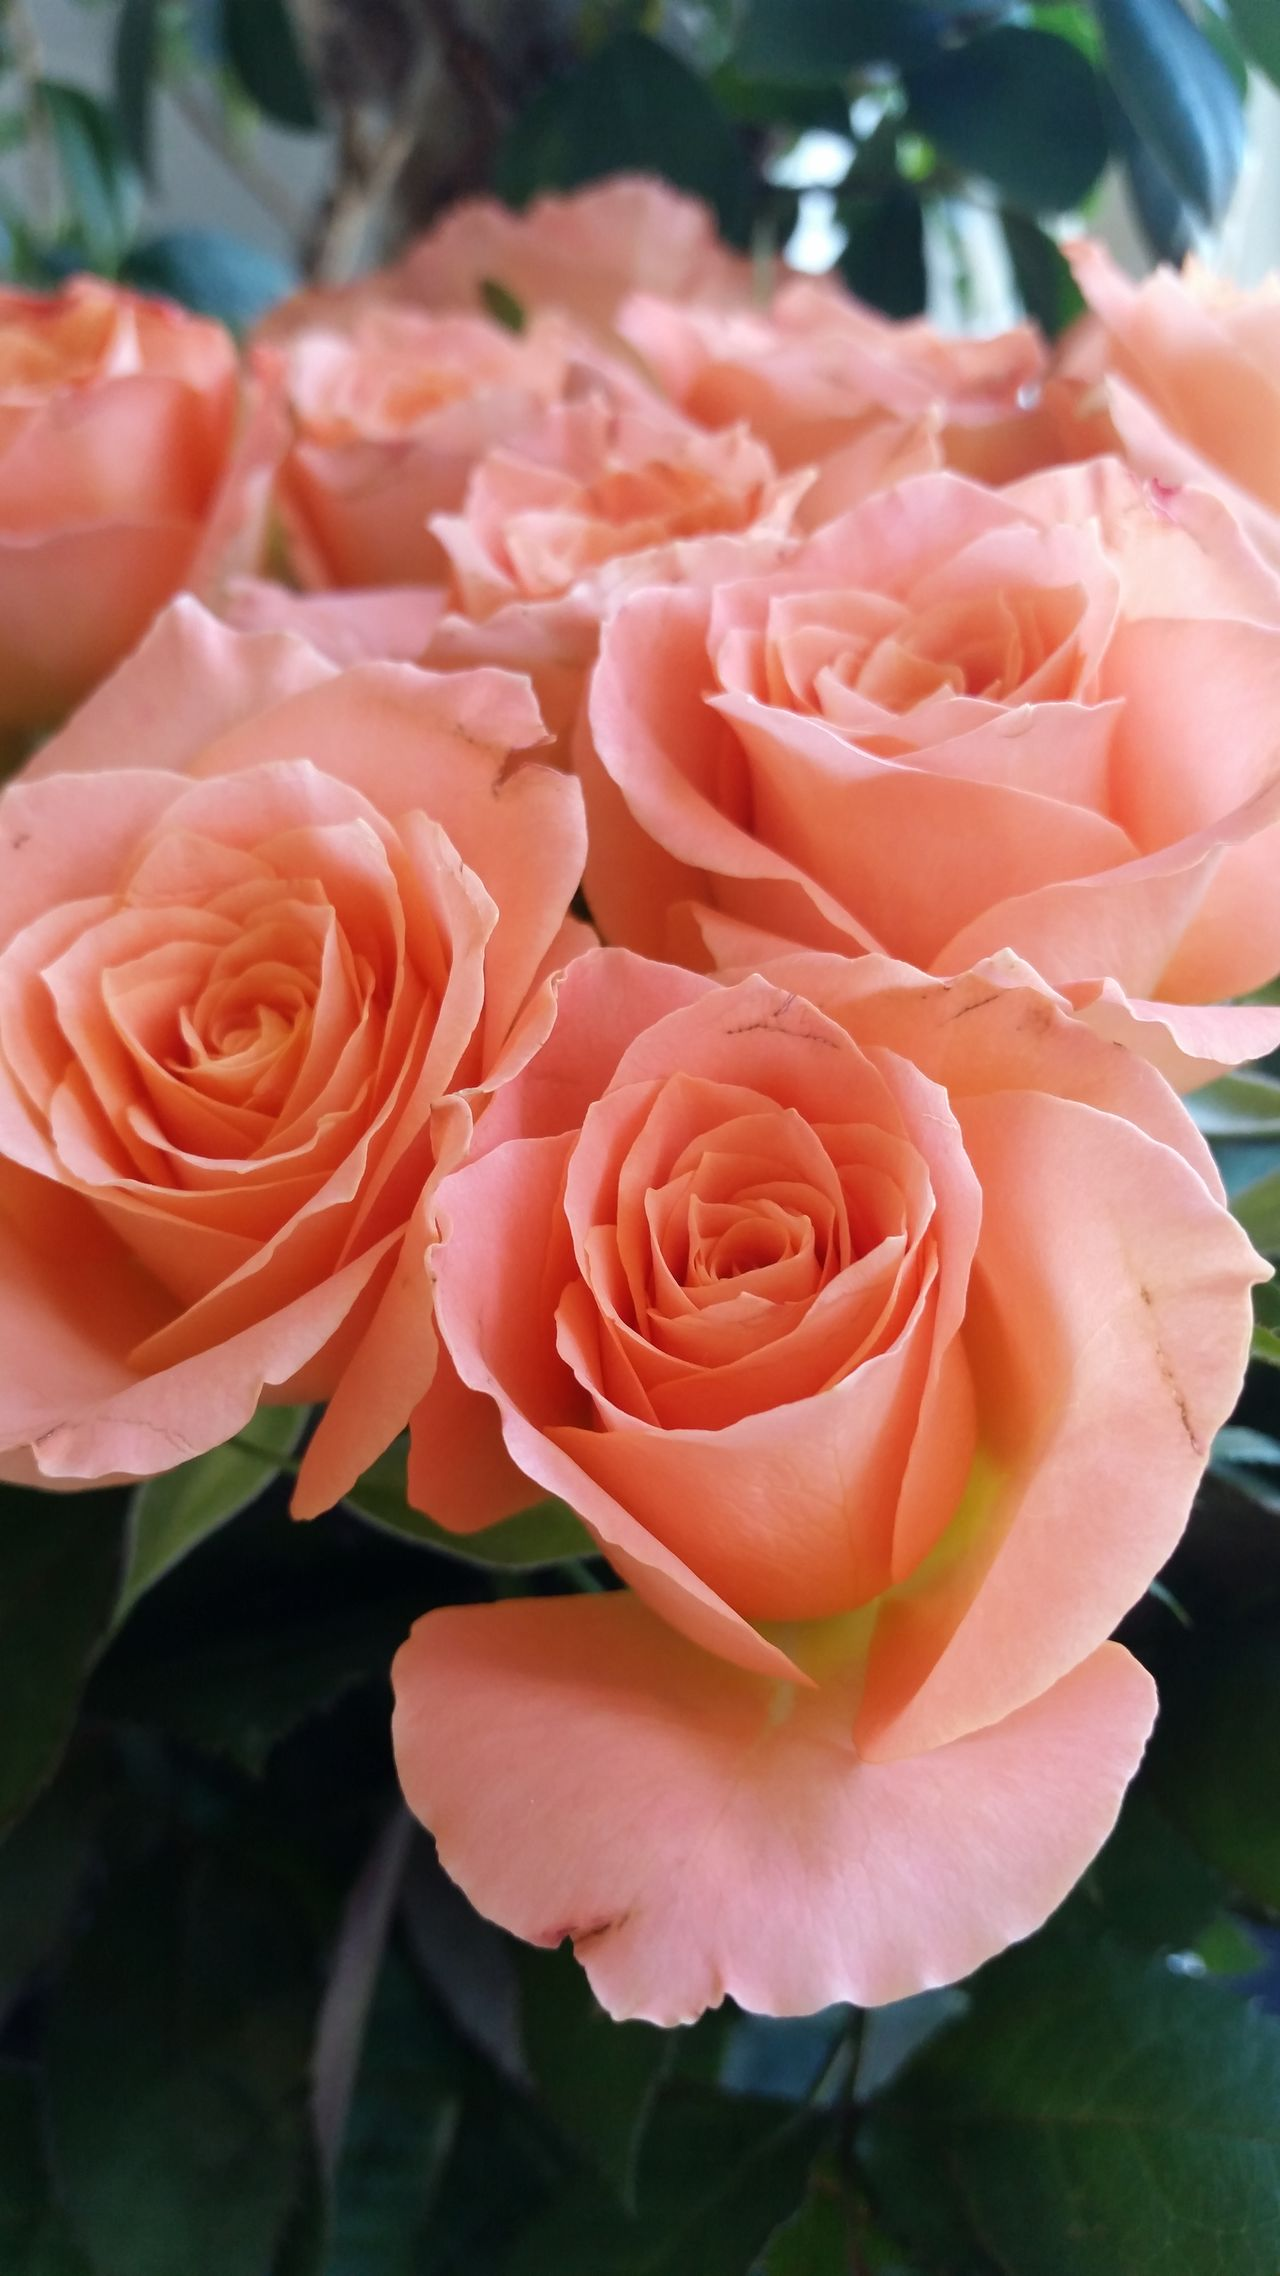 Flower Rose - Flower Roza Flowers Nature Rosé Nature Freshness Rose🌹 Kwiaty